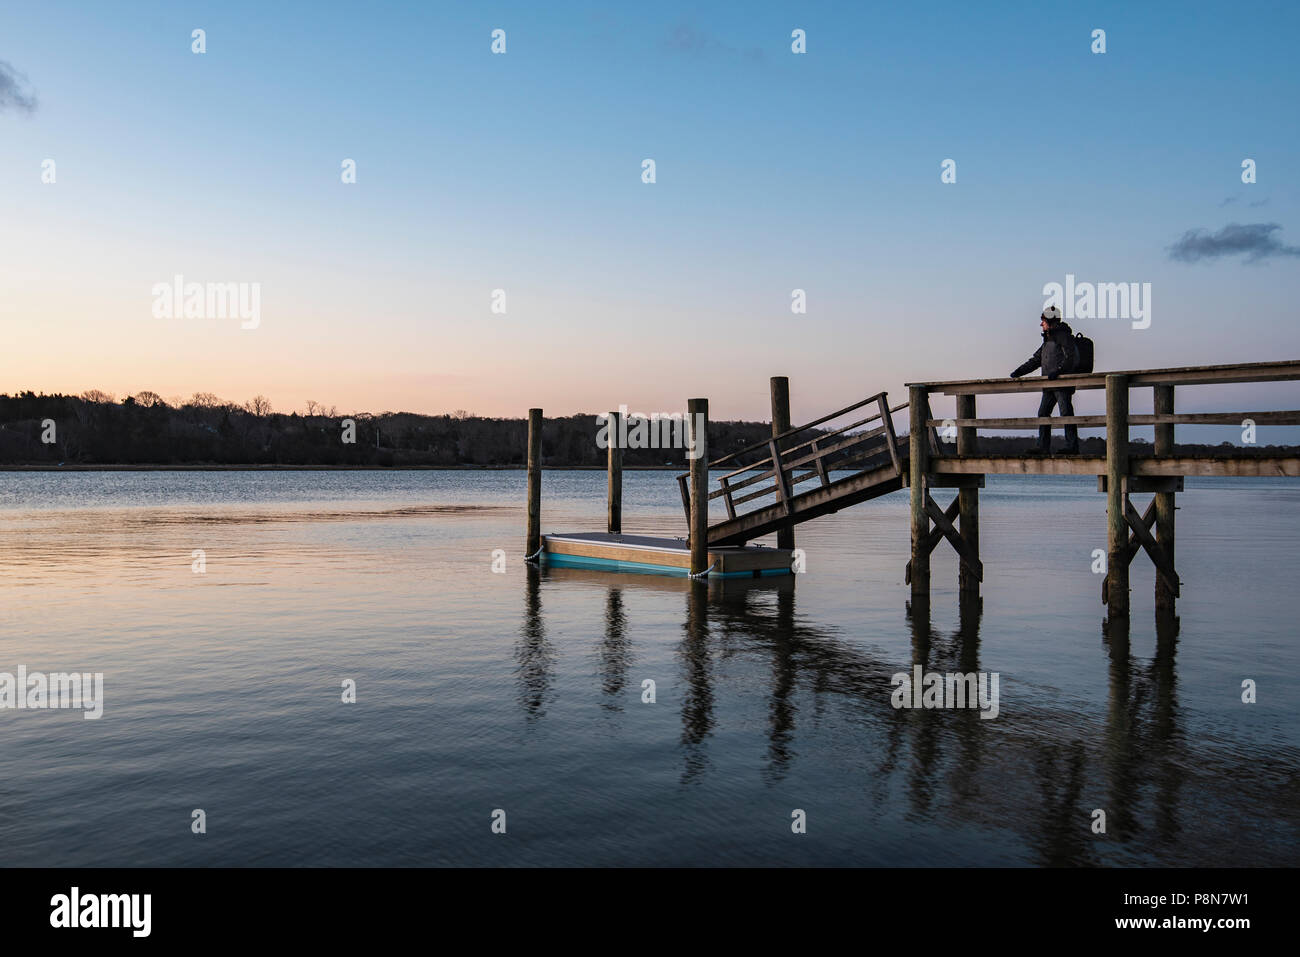 MAN STANDING ON JETTY AT DAWN, CAPE COD, MA, USA - Stock Image